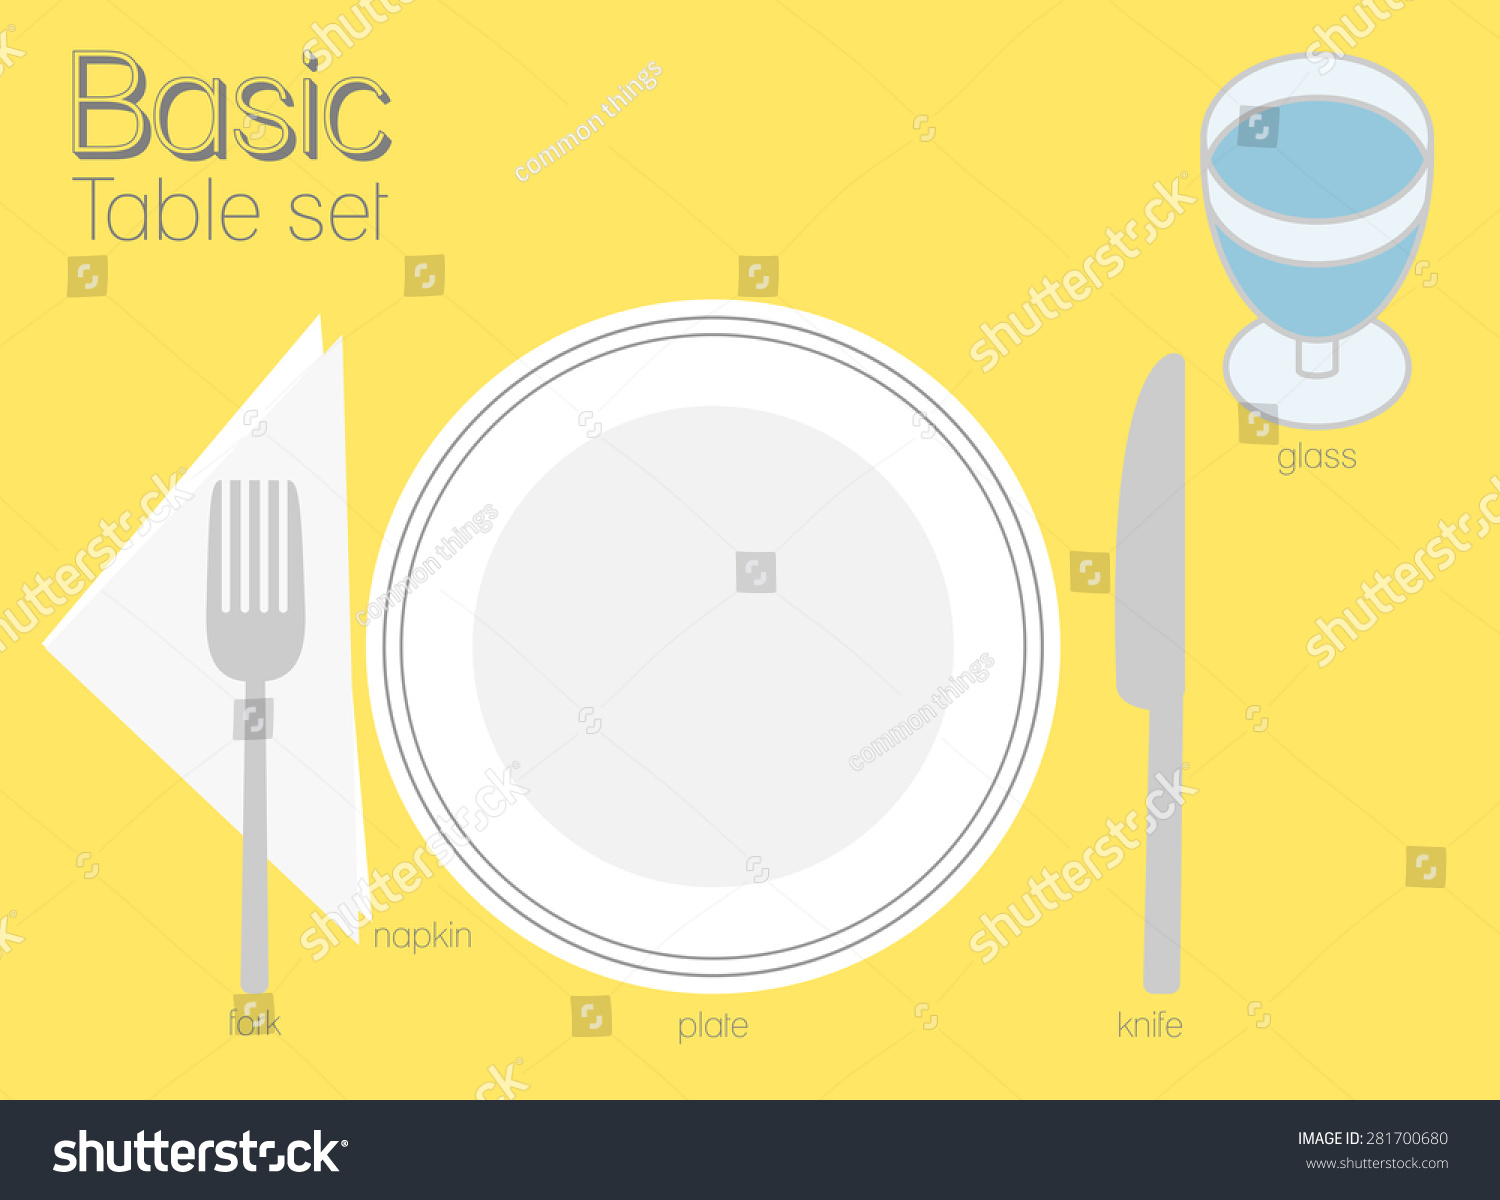 Simple dinner table setting - Basic Table Setting Common Type Of Table Setting For Western Dining There Is Only One